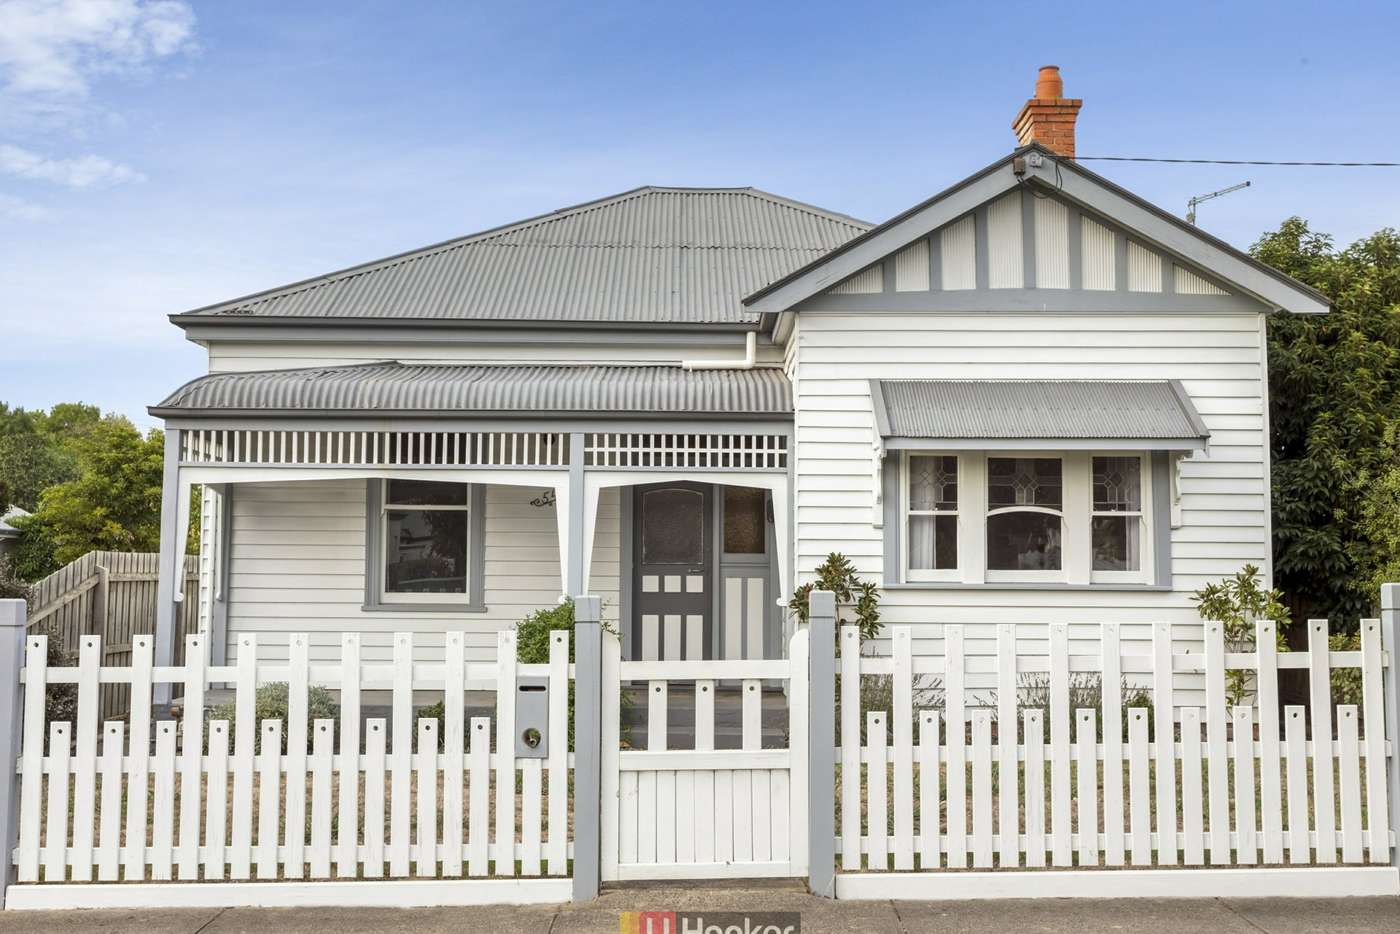 Main view of Homely house listing, 54 Pollack Street, Colac VIC 3250